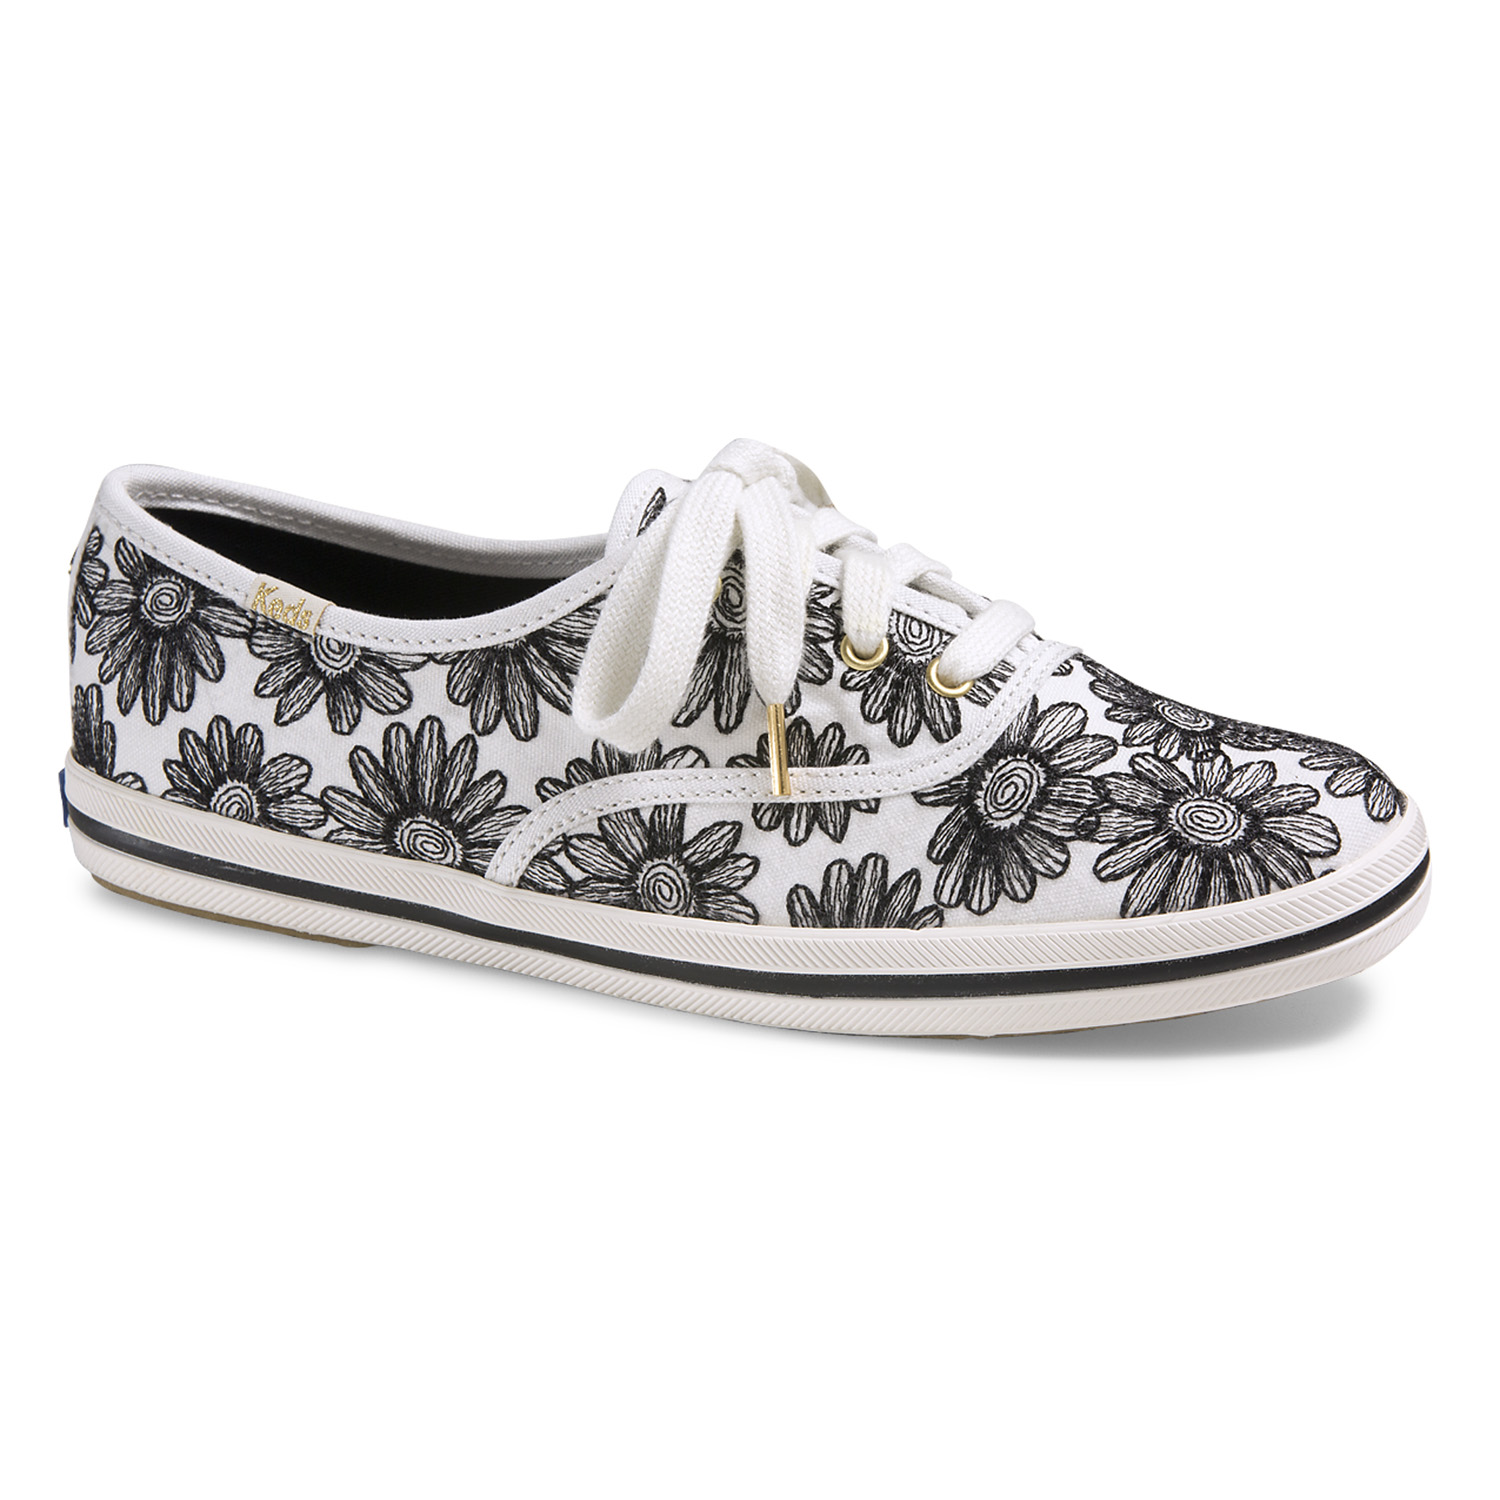 WF54485 Champion Daisy Embroidery black_70euros